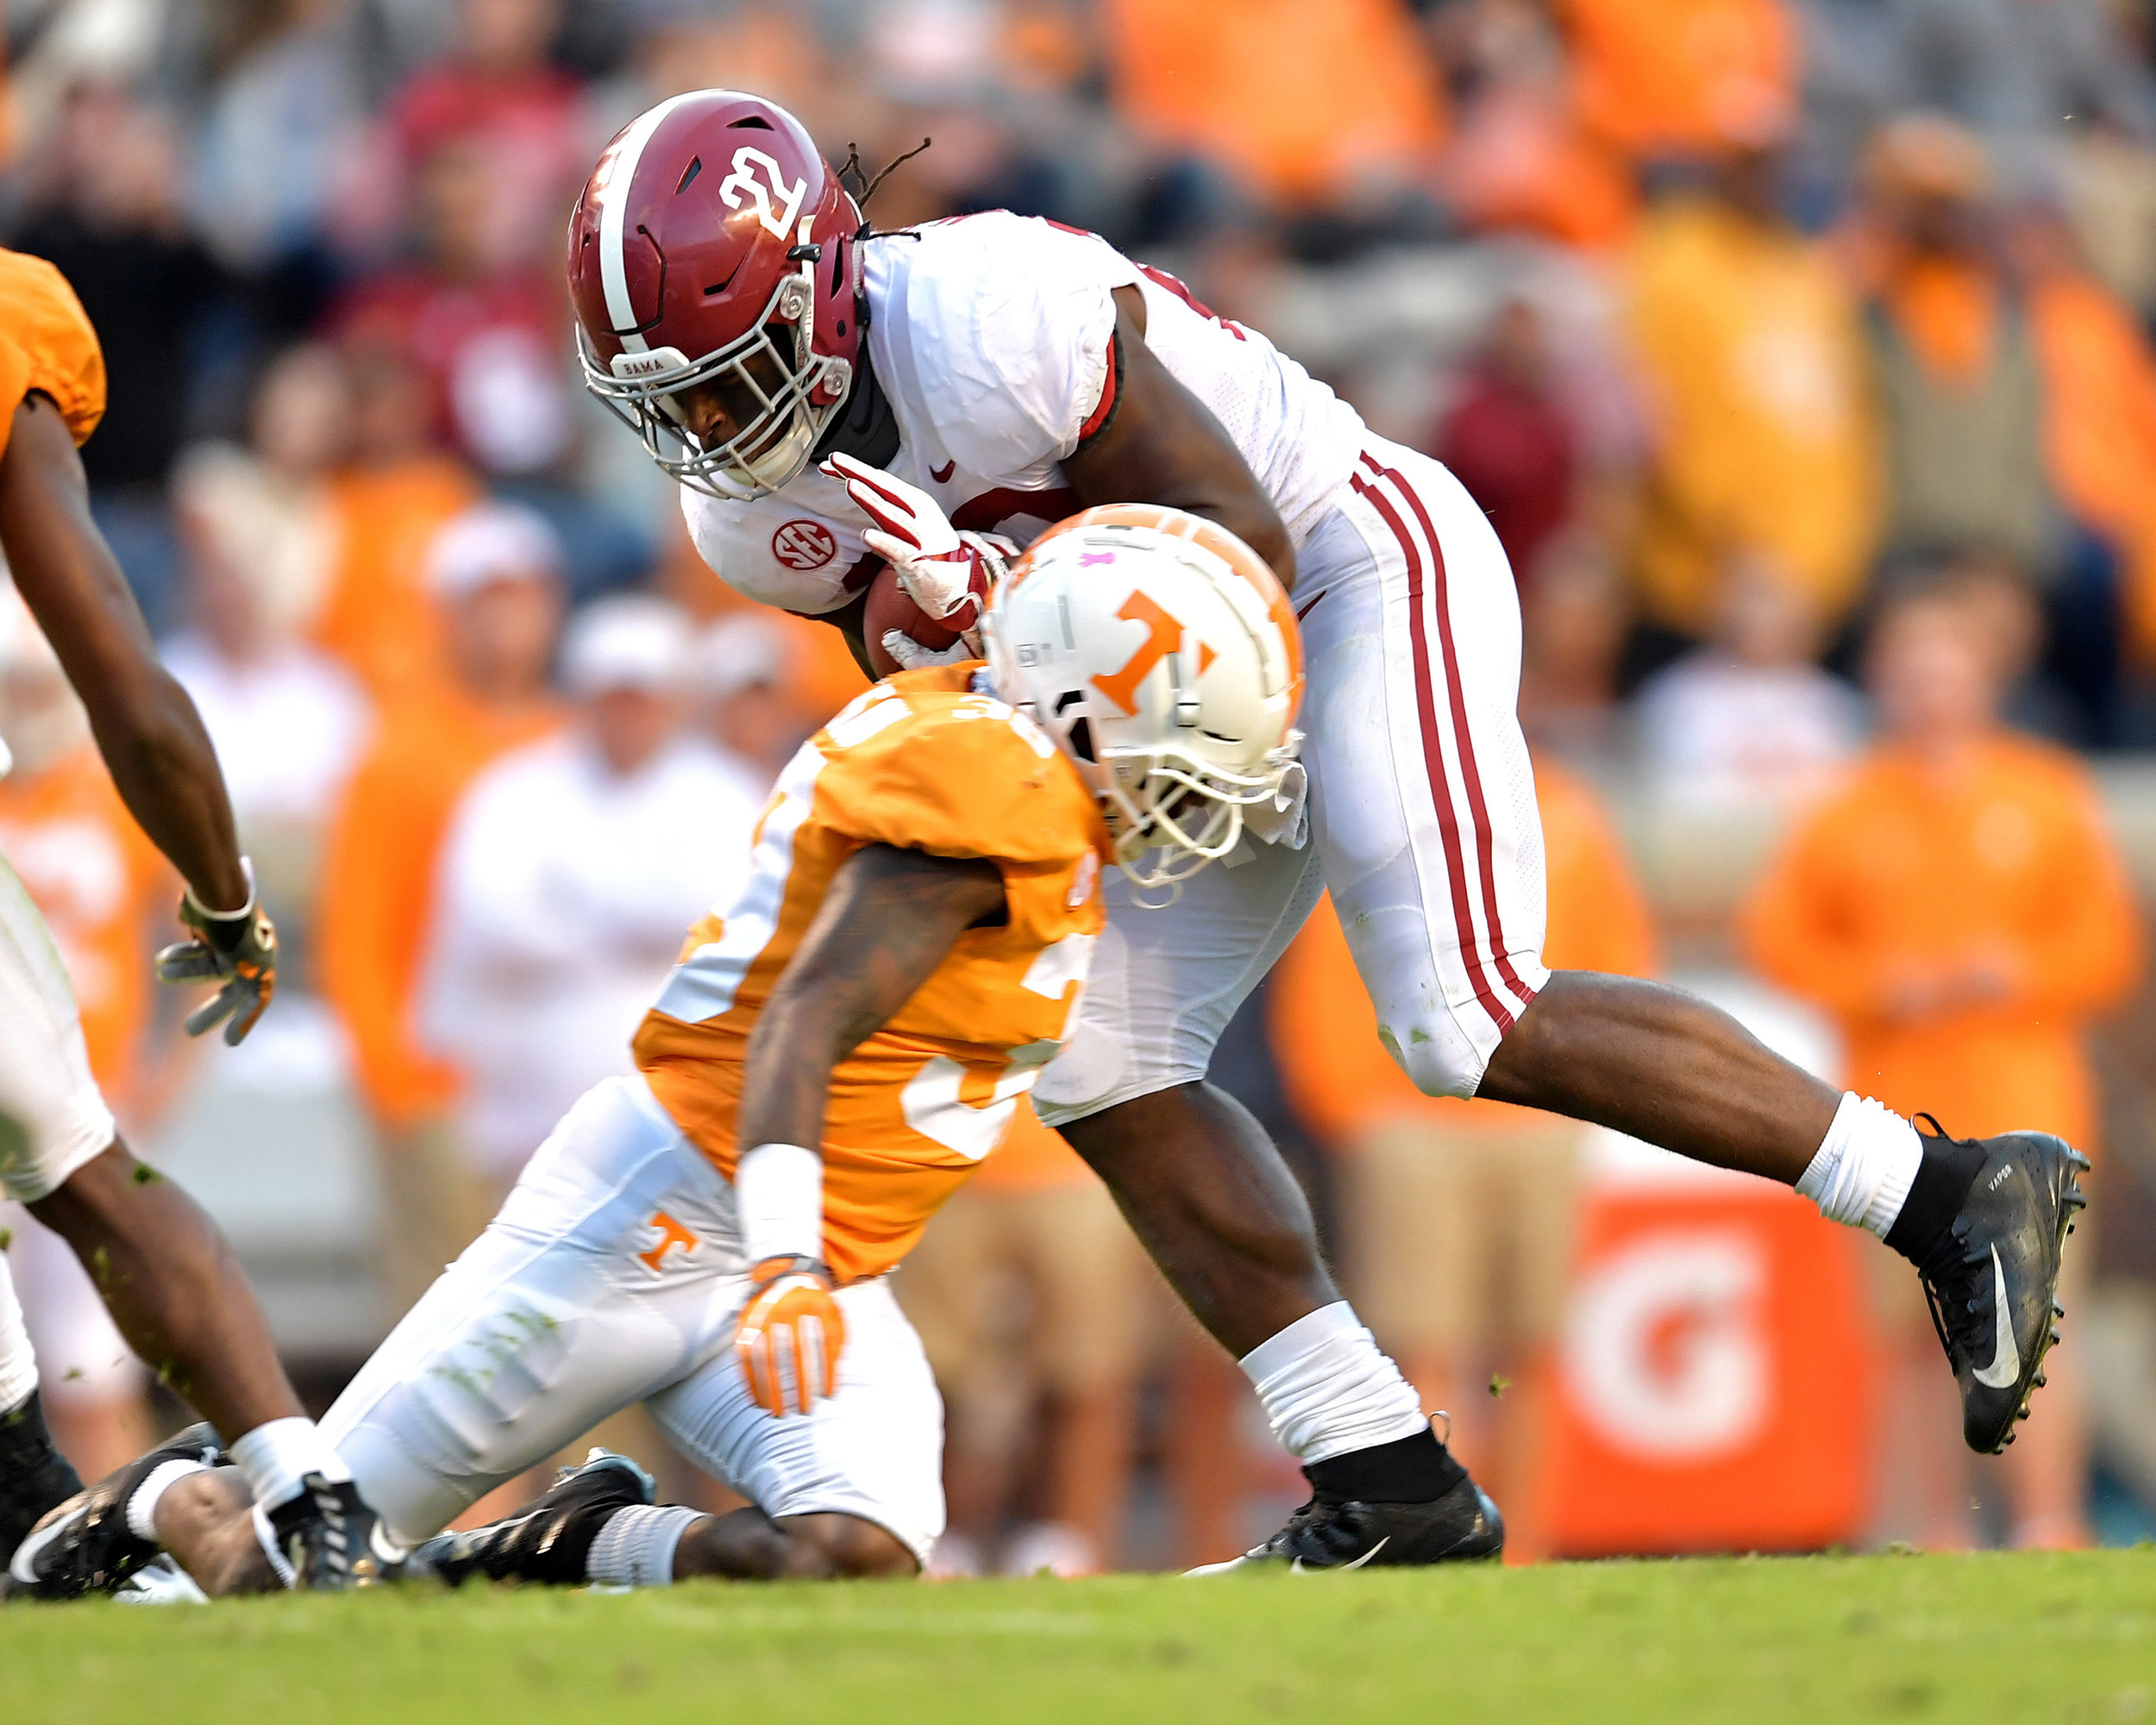 Alabama Crimson Tide running back Najee Harris (22) is tackled after a long run in the third quarter of the Alabama at Tennessee NCAA football game on Saturday, Oct. 20, 2018, at Neyland Stadium in Knoxville. Tenn. Alabama wins 58-21. (Photo by Lee Walls)